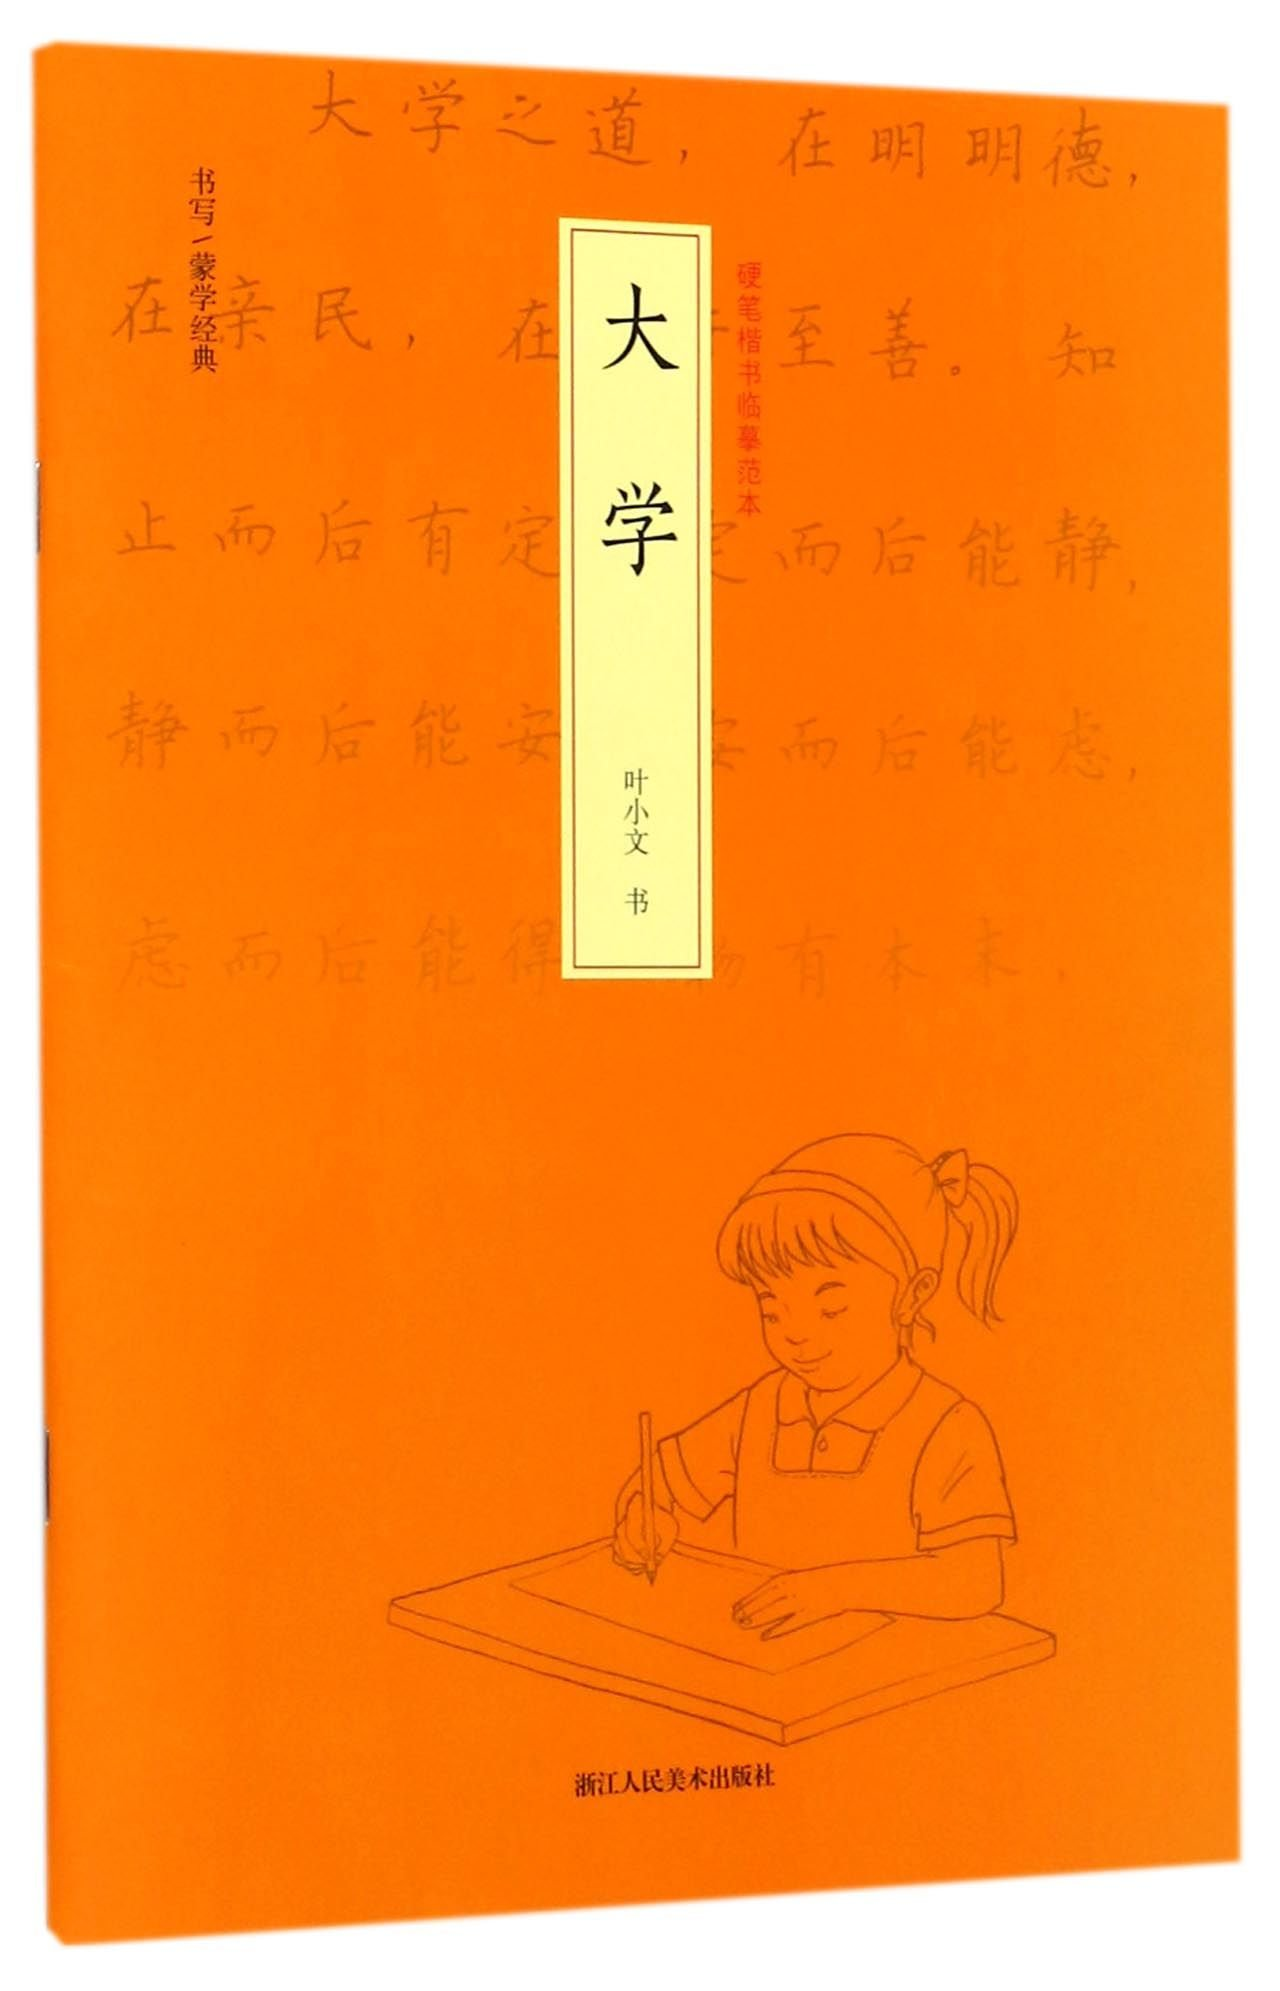 The Great Learning - Facsimile Model for Regular Script Practice with Hard-tipped Pen (Chinese Edition) ebook